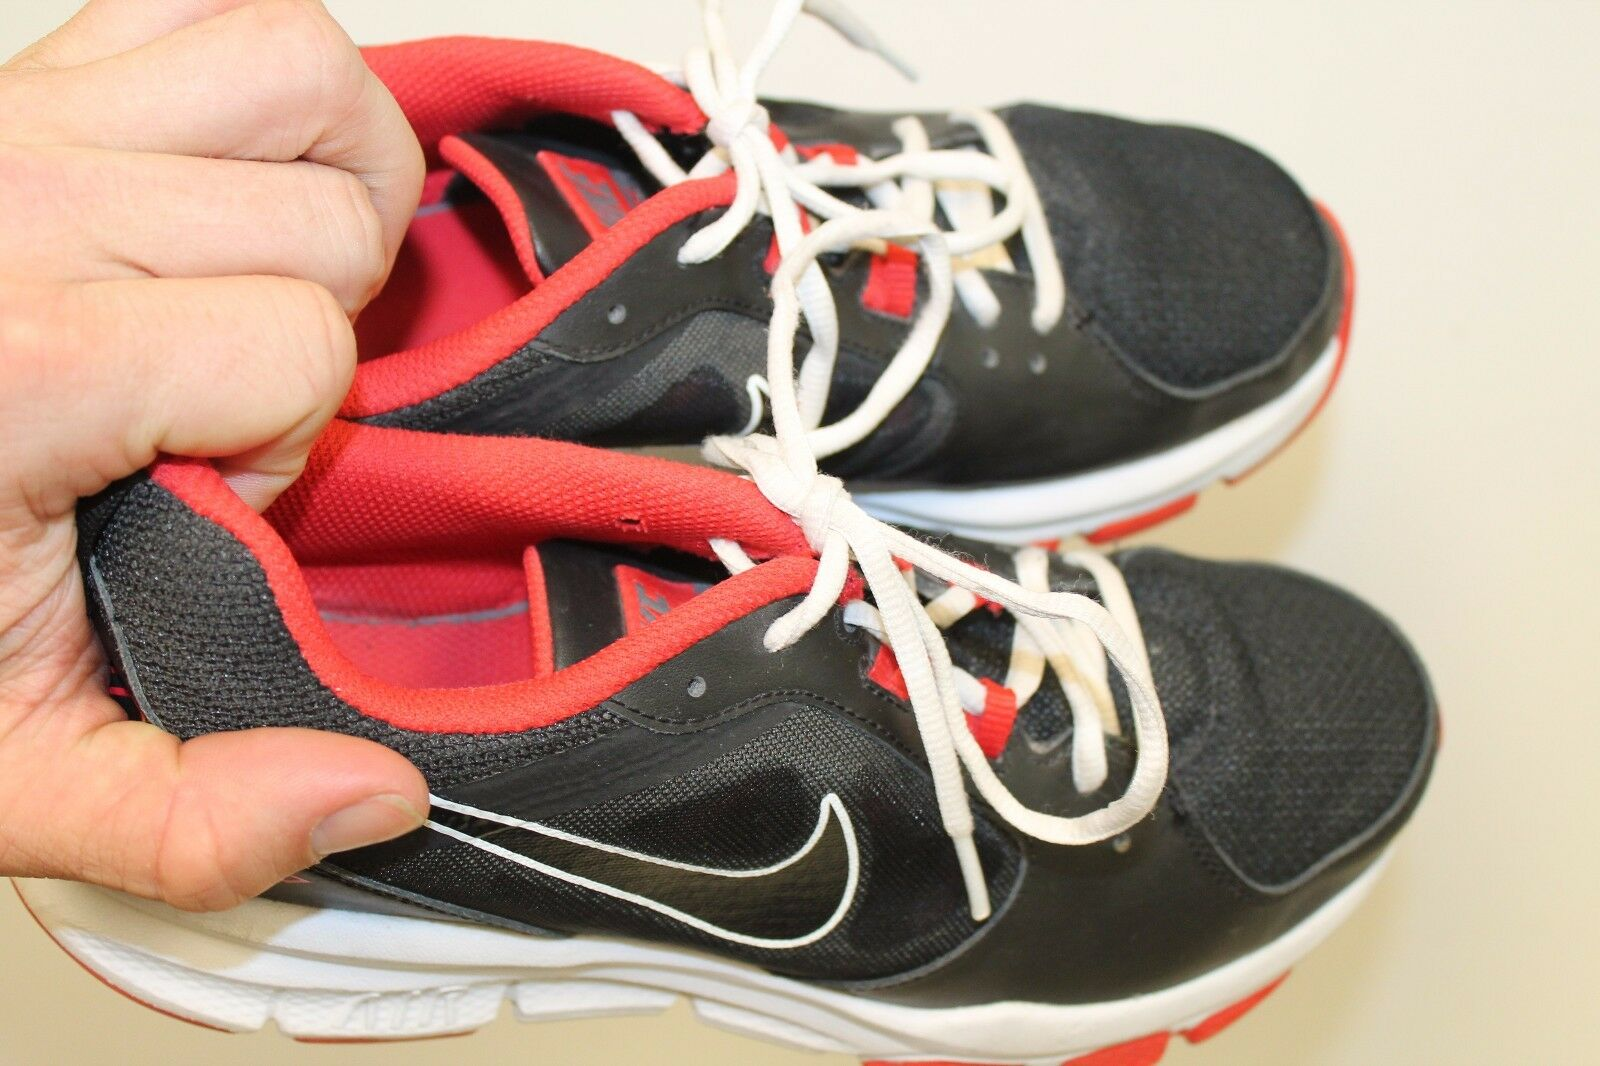 a01ae31189e ... NIKE NIKE NIKE AIR VELOCITRAINER MEN S RUNNING SHOES SZ 9.5 554891-008  6bc131